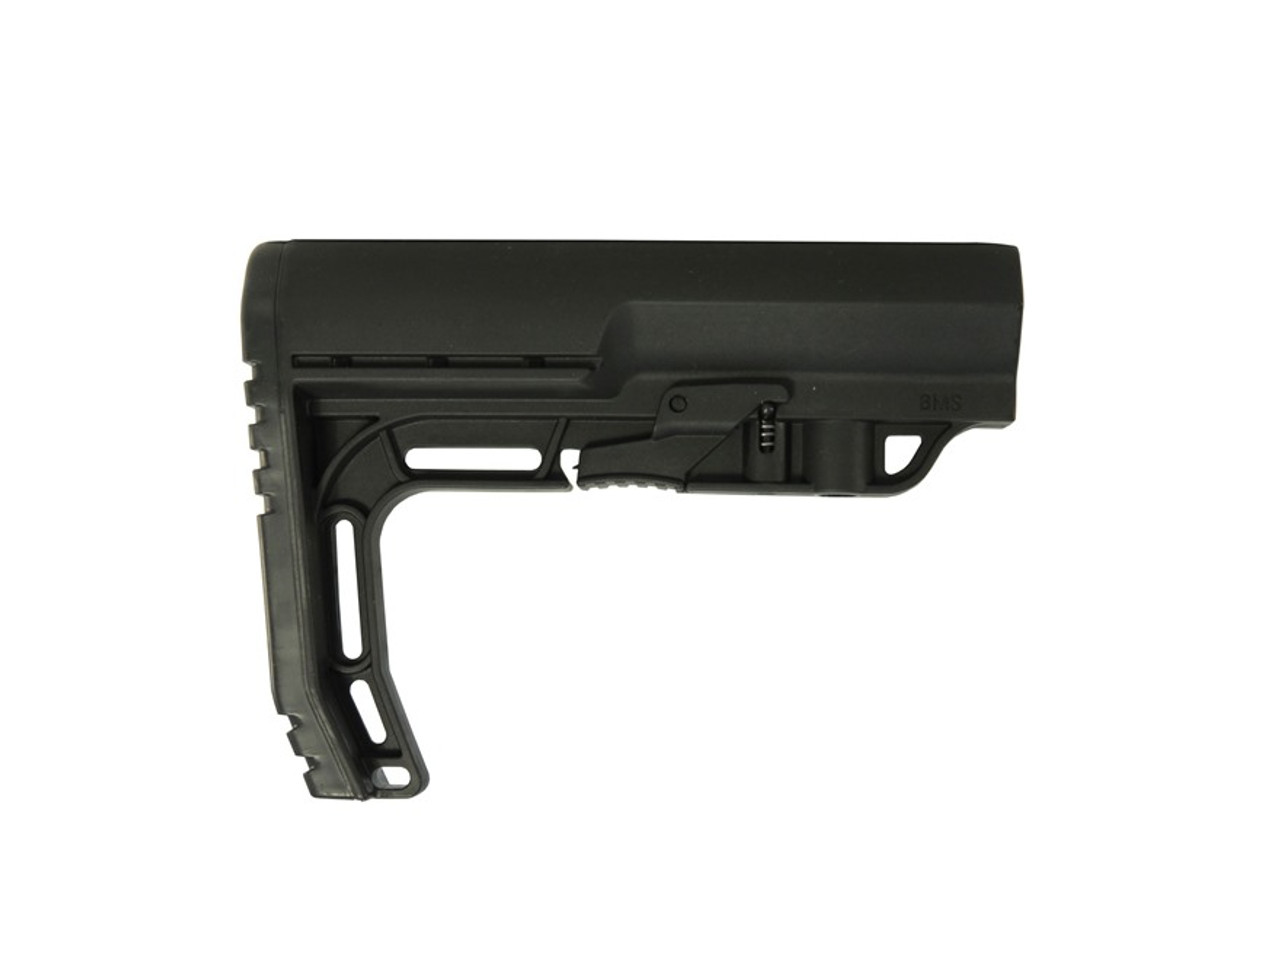 Mission First Tactical - Battlelink Minimalist stock